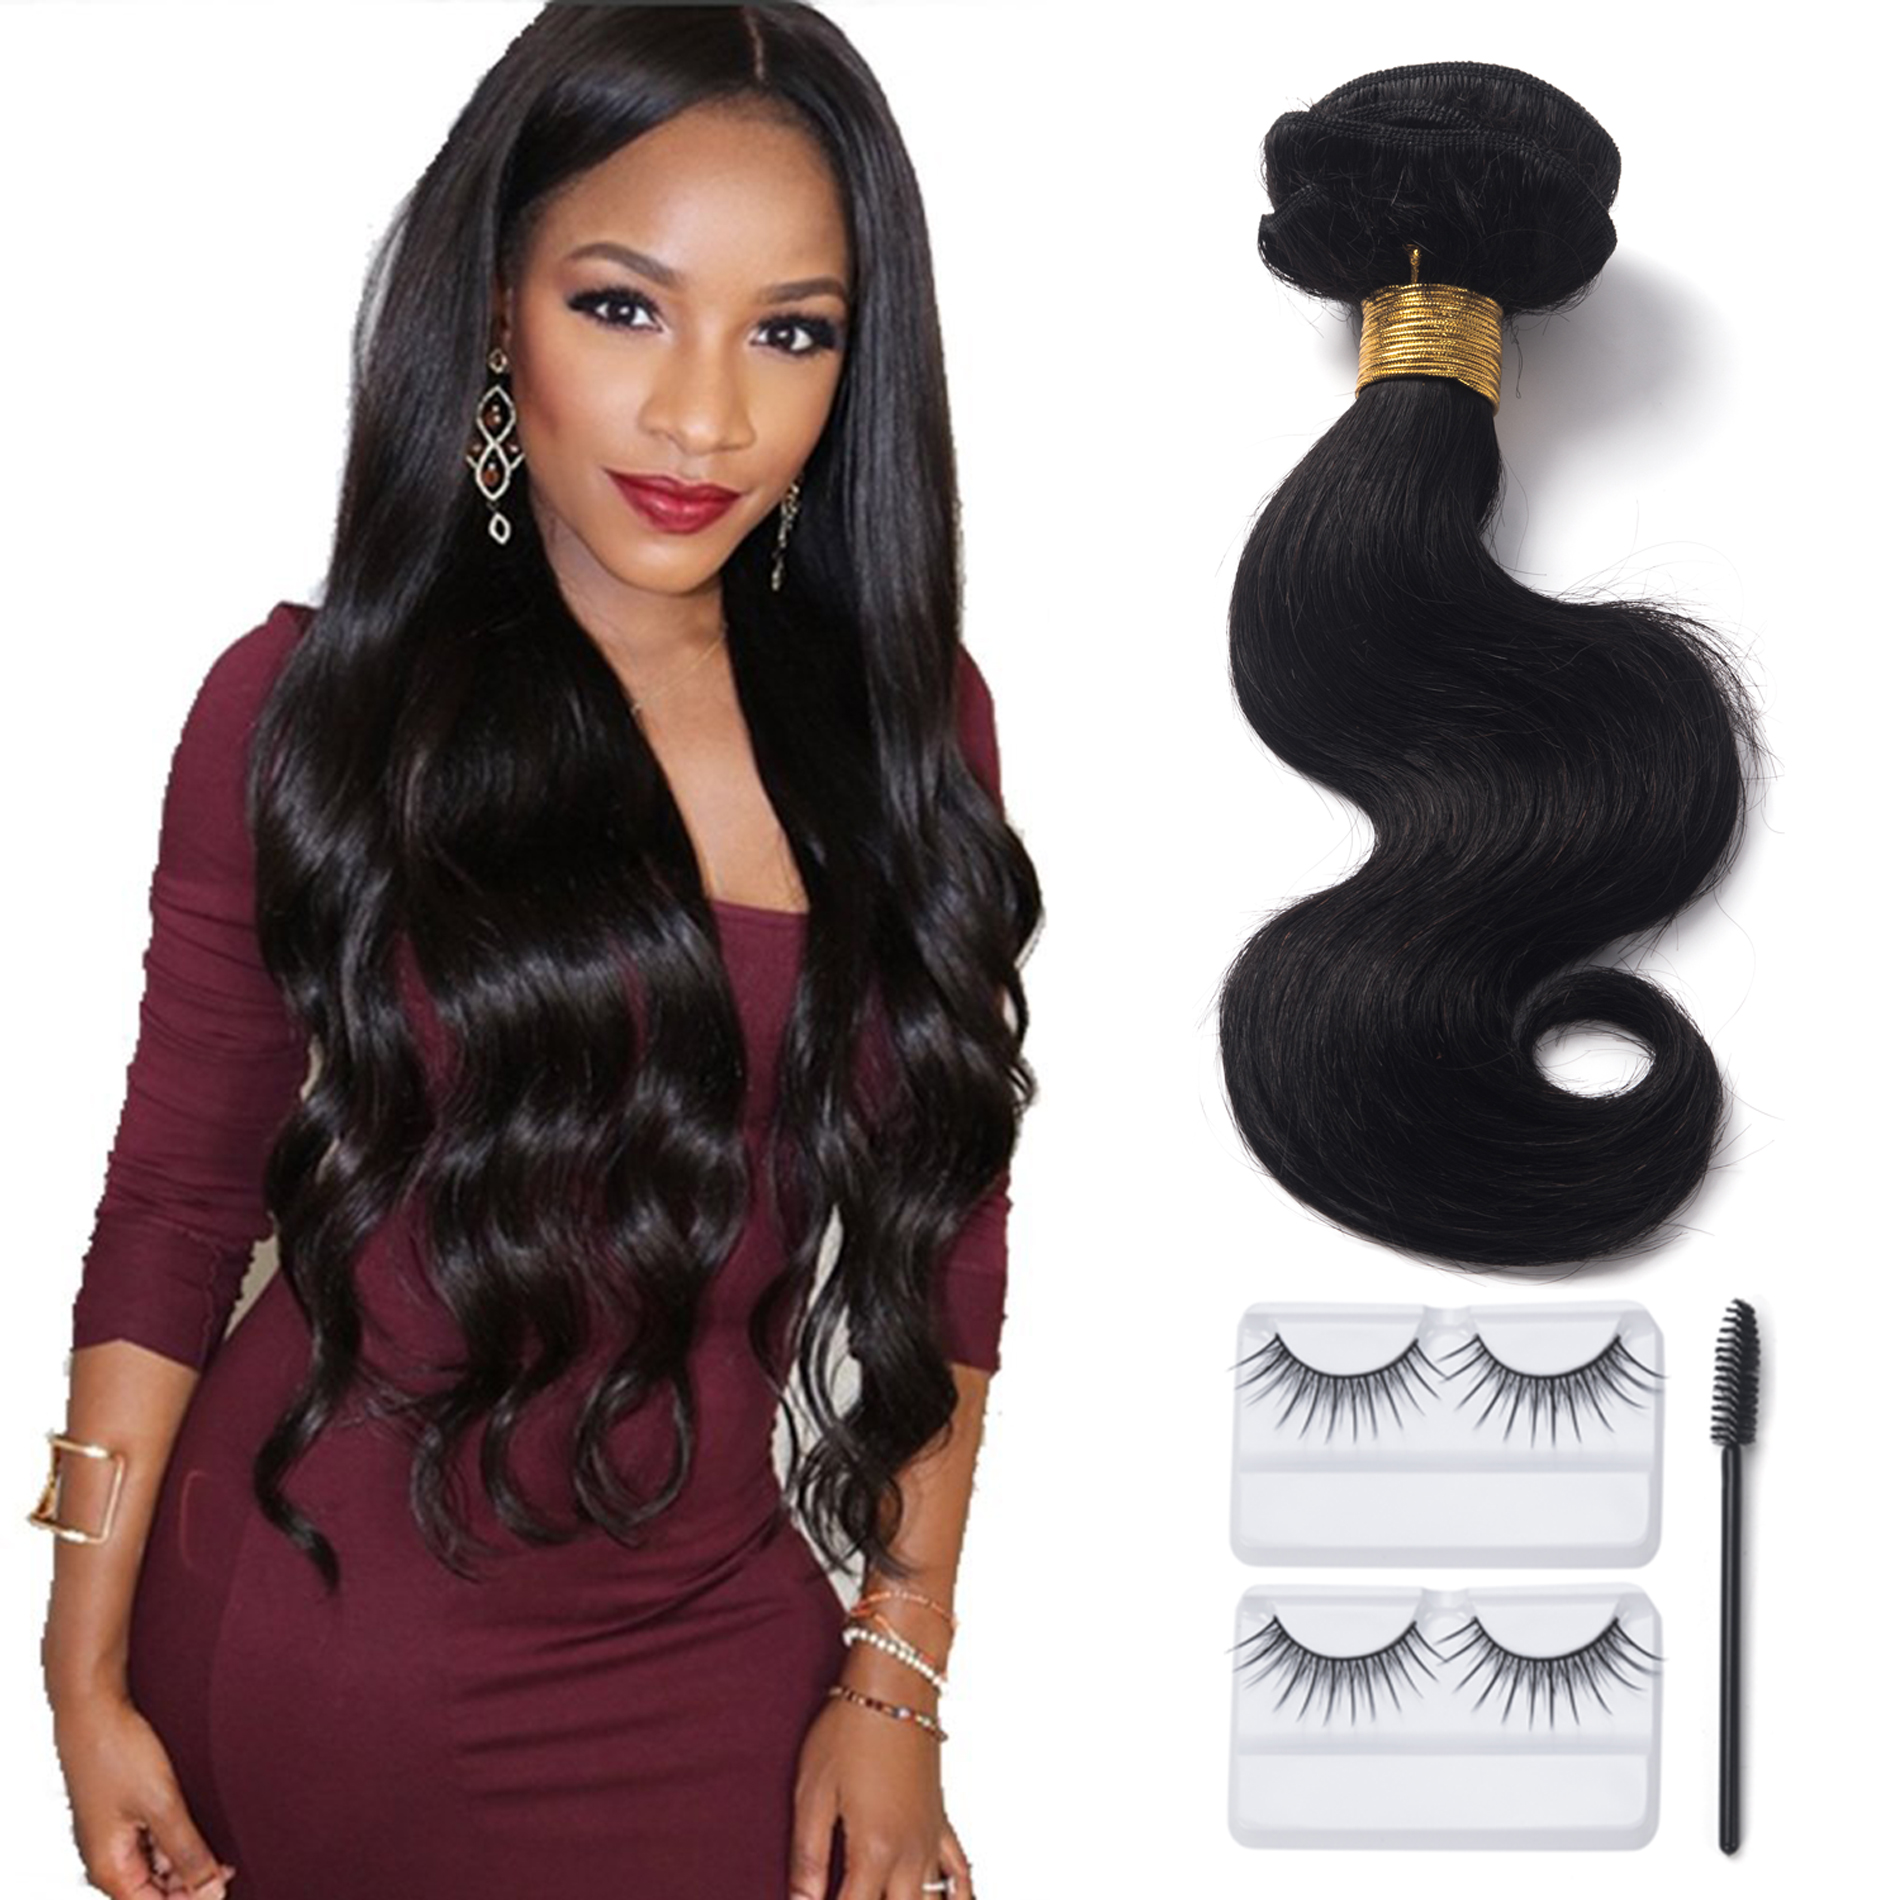 "12""-20"" Body Wave Human Hair Bundle 7A Unprocessed Brazilian Virgin Hair Weave Wefts Extension Natural Color"